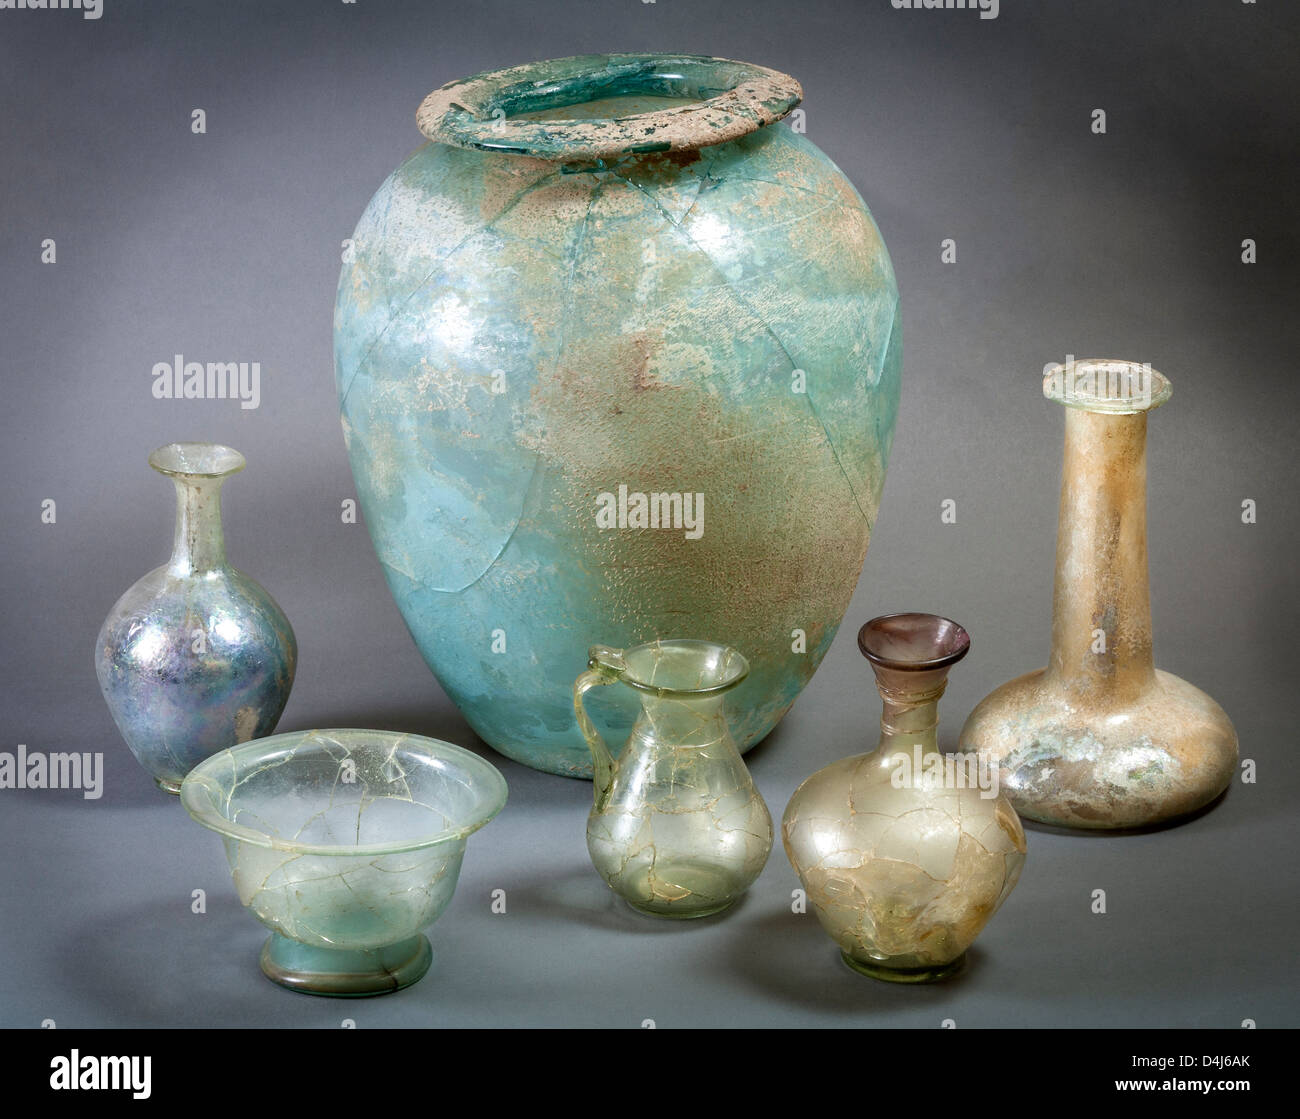 Archaeological artefact glassware from Roman Site of Munigua, Seville, Spain. - Stock Image